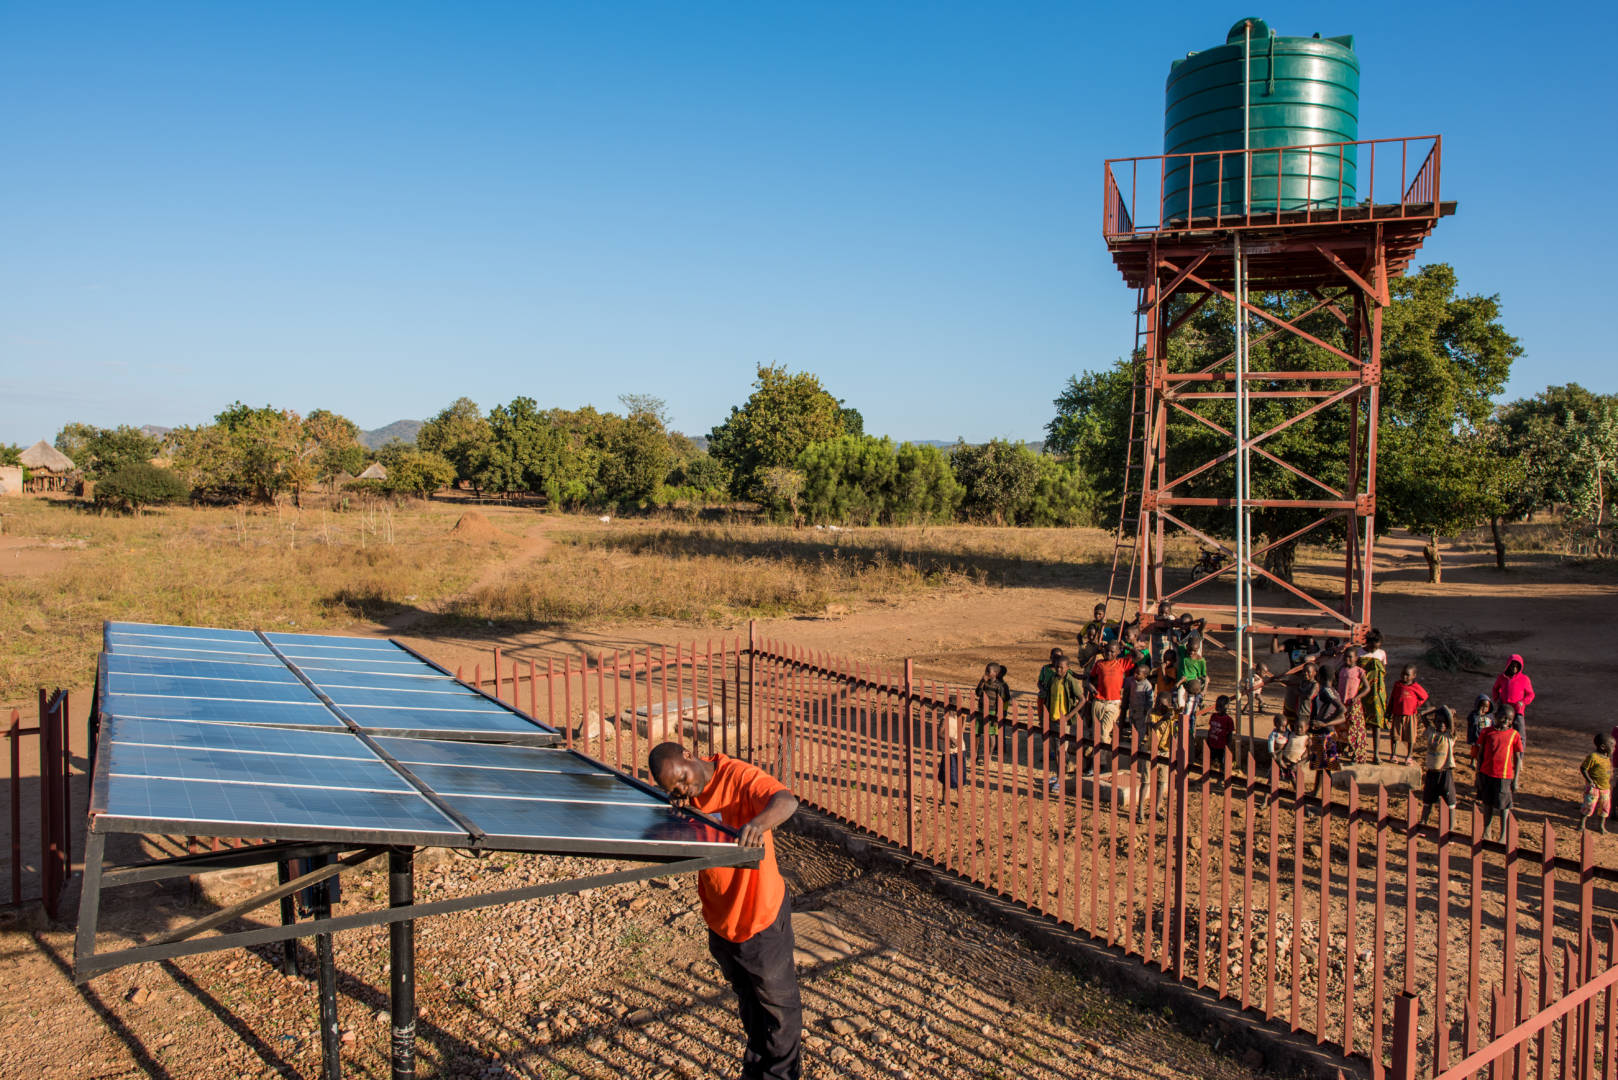 World Vision is the largest nongovernmental provider of clean drinking water in the developing world, and we've teamed up with the Grundfos — the largest maker of water pumps in the world — in order to provide clean water to millions of people in sub-Saharan Africa using solar-powered water pumps.